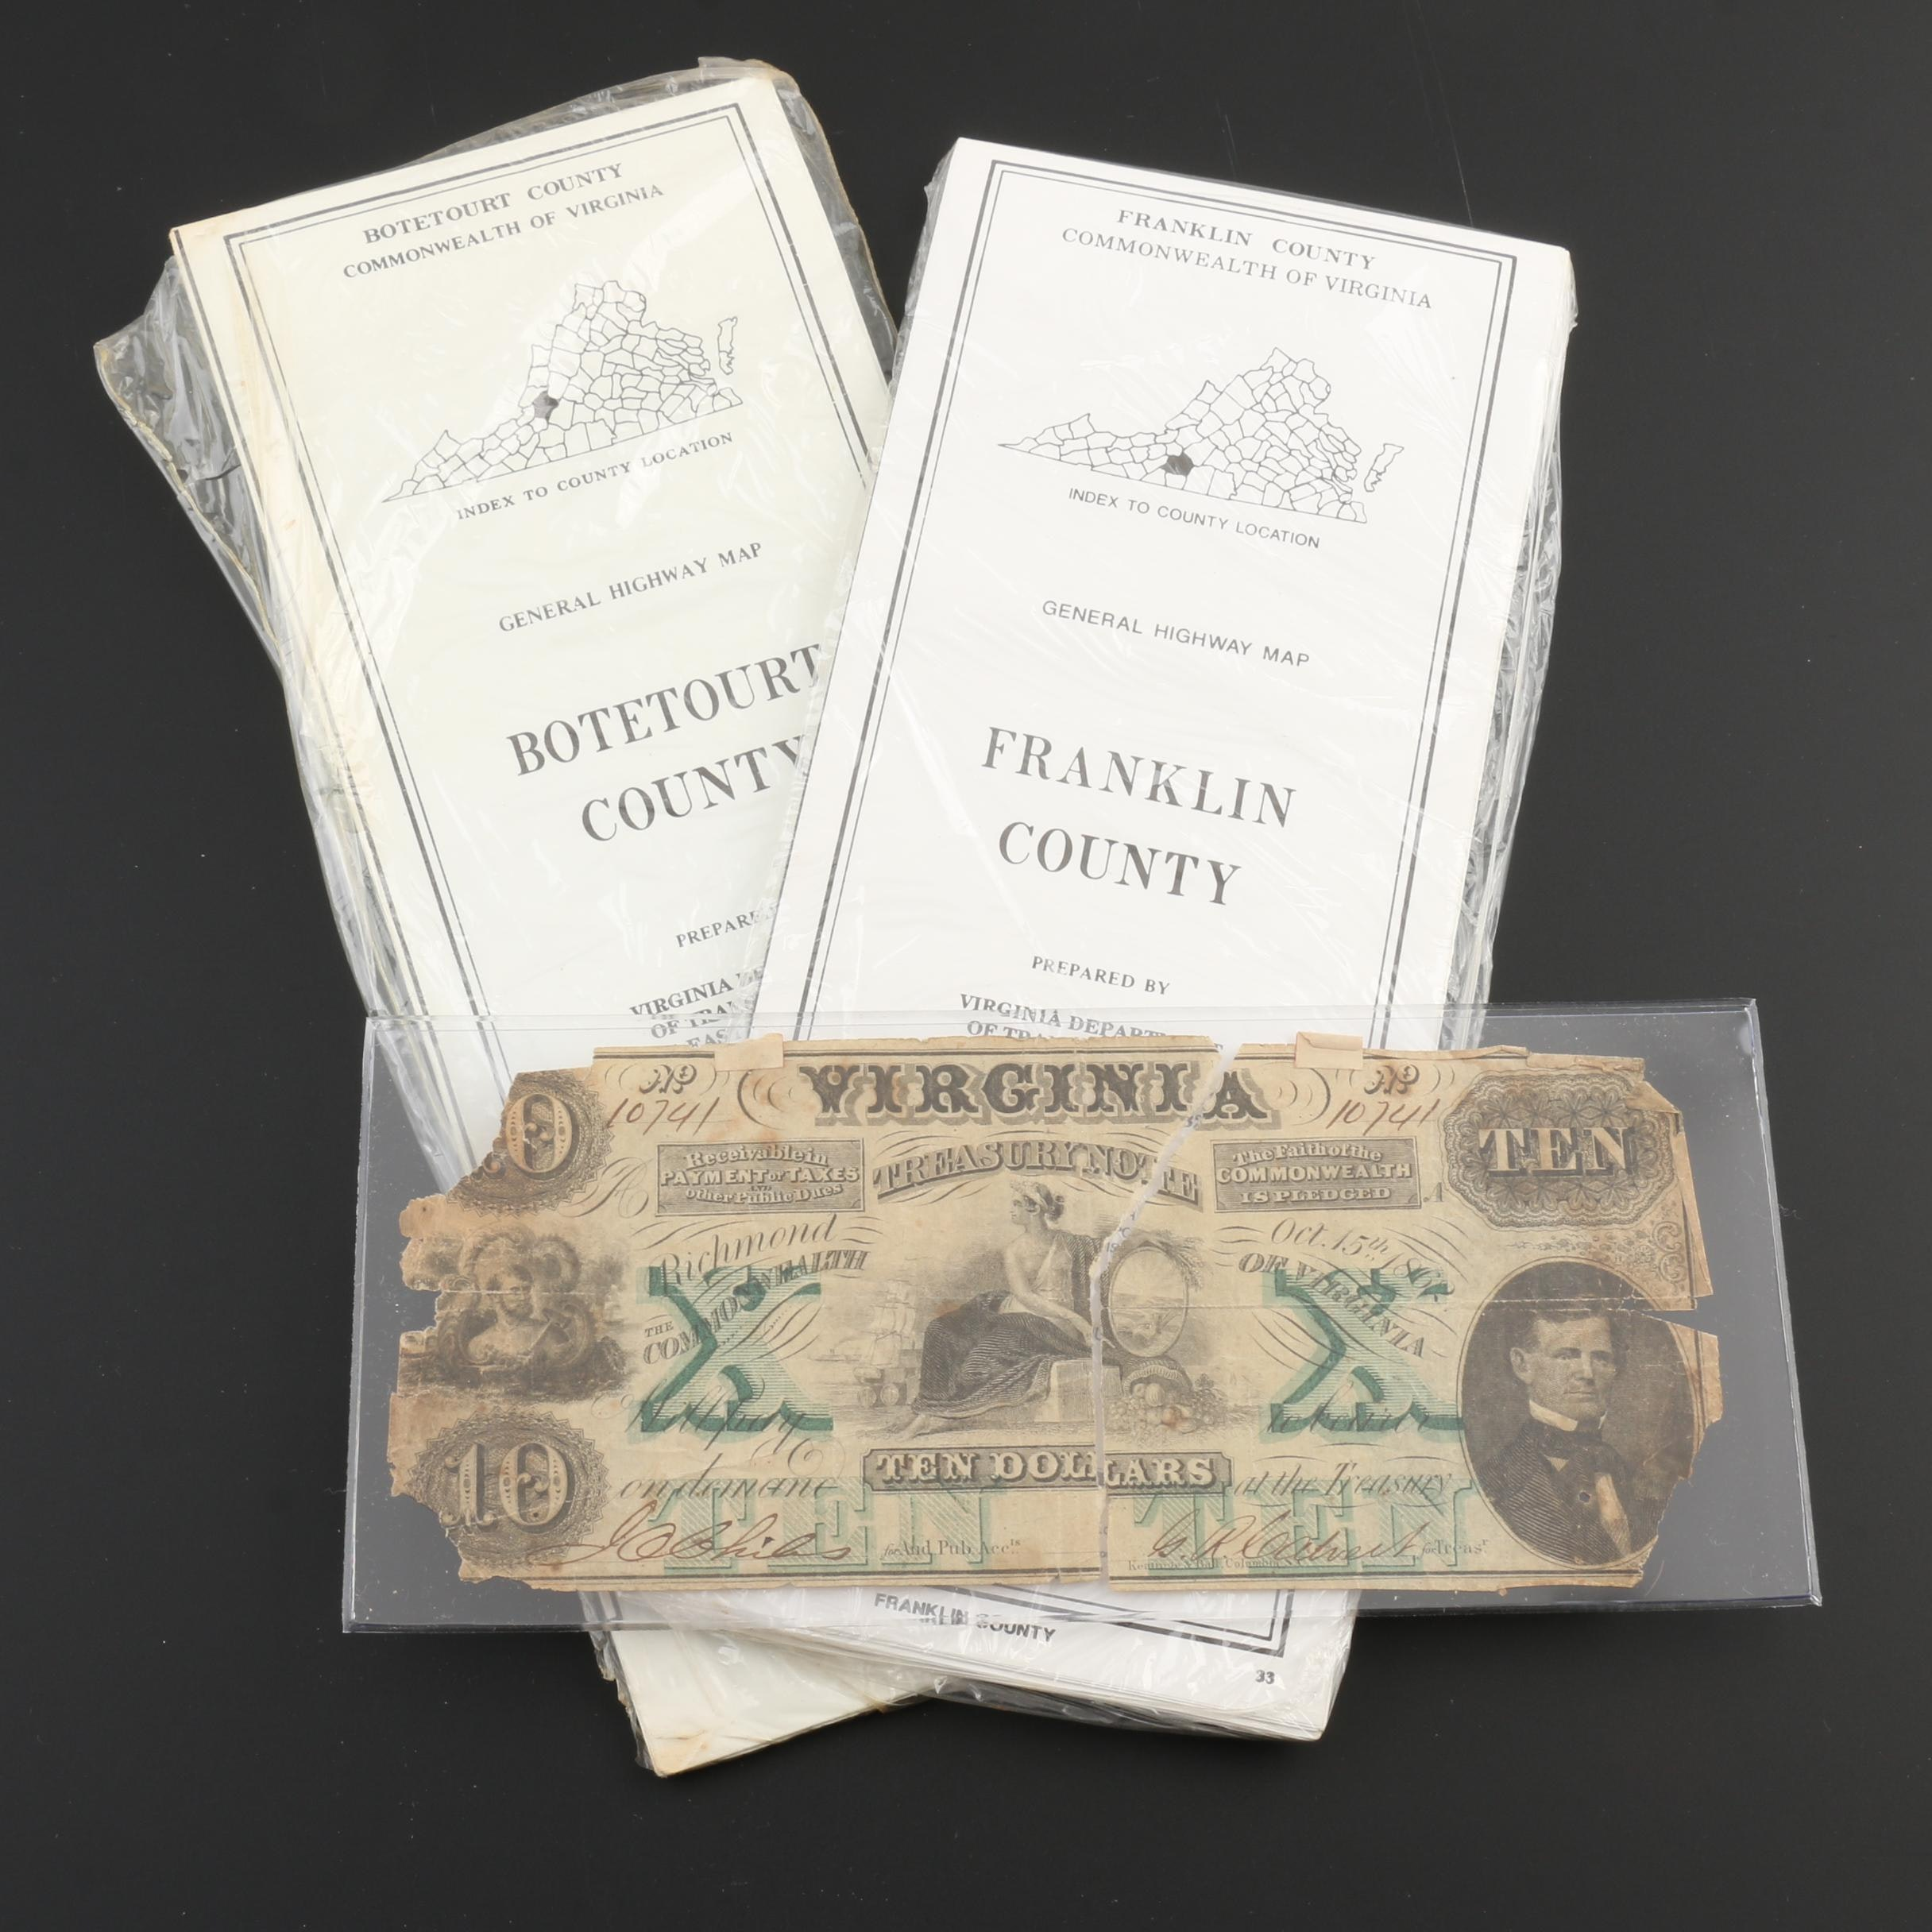 1862 $10 Virginia Treasury Note and Two Virginia County Maps